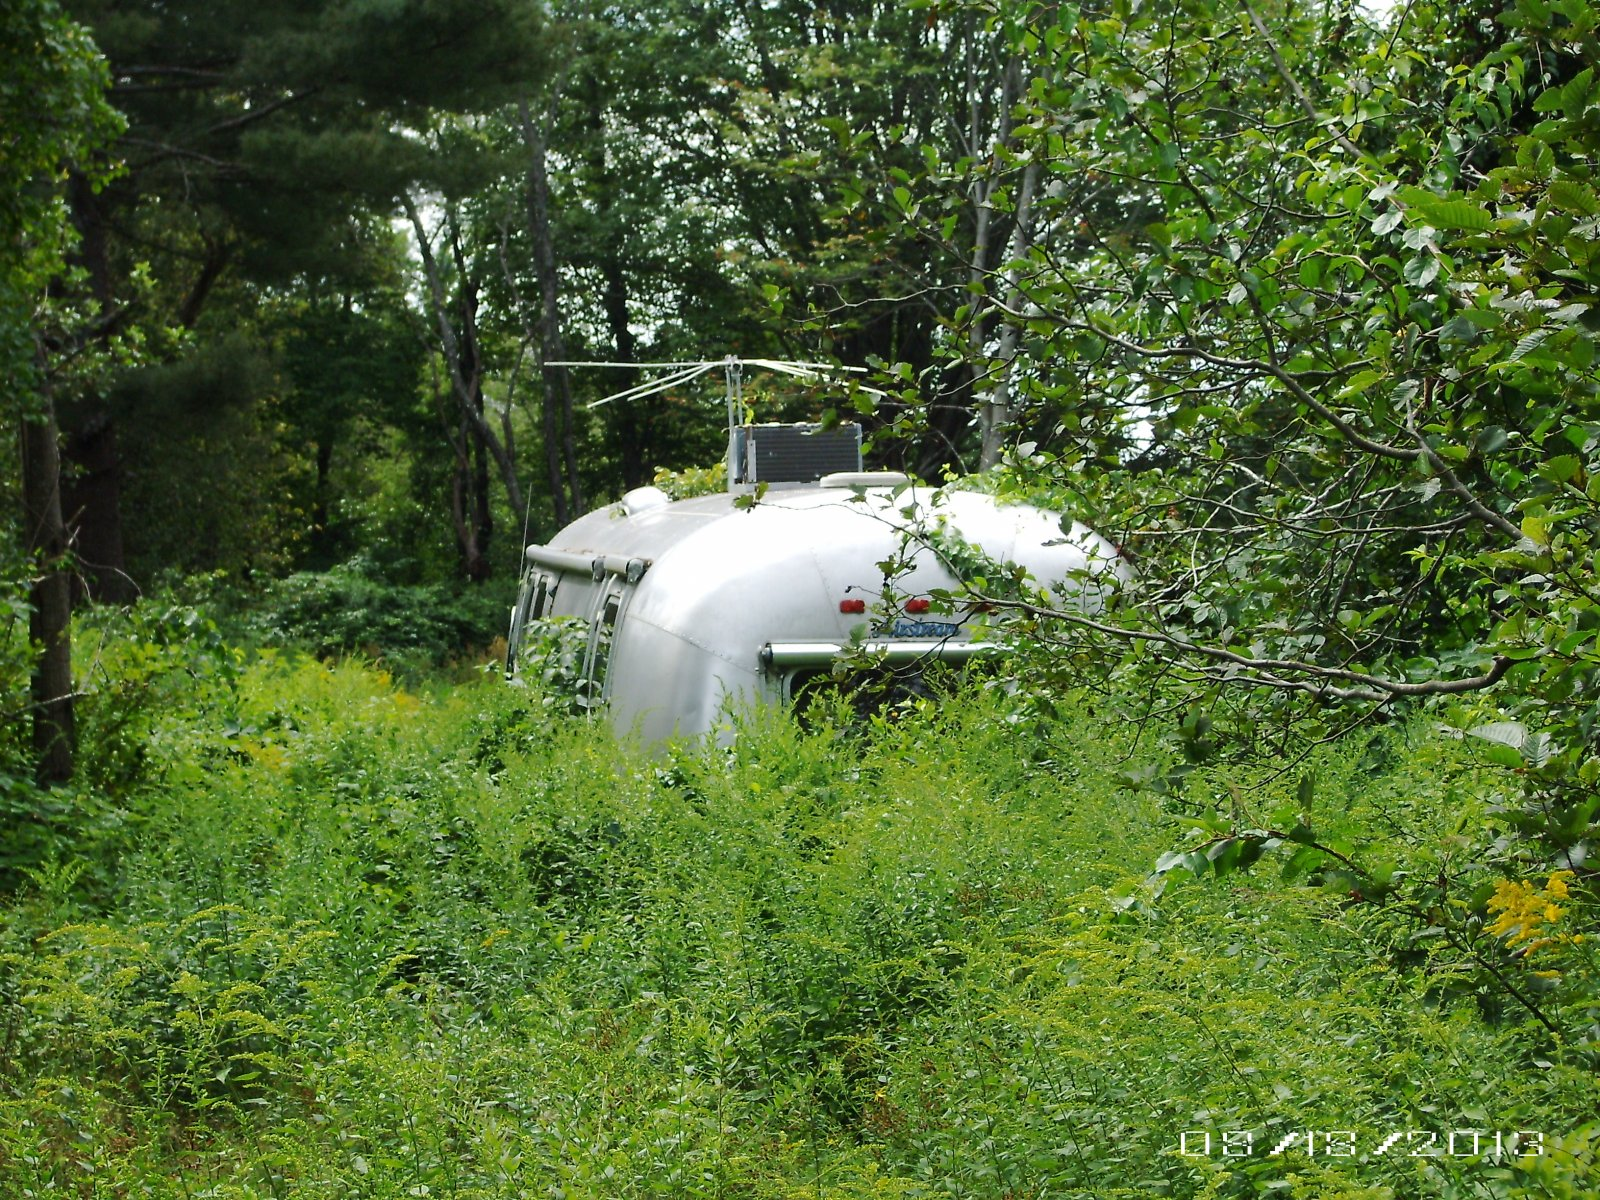 Click image for larger version  Name:Airstream in the weeds 001.jpg Views:121 Size:684.5 KB ID:193524